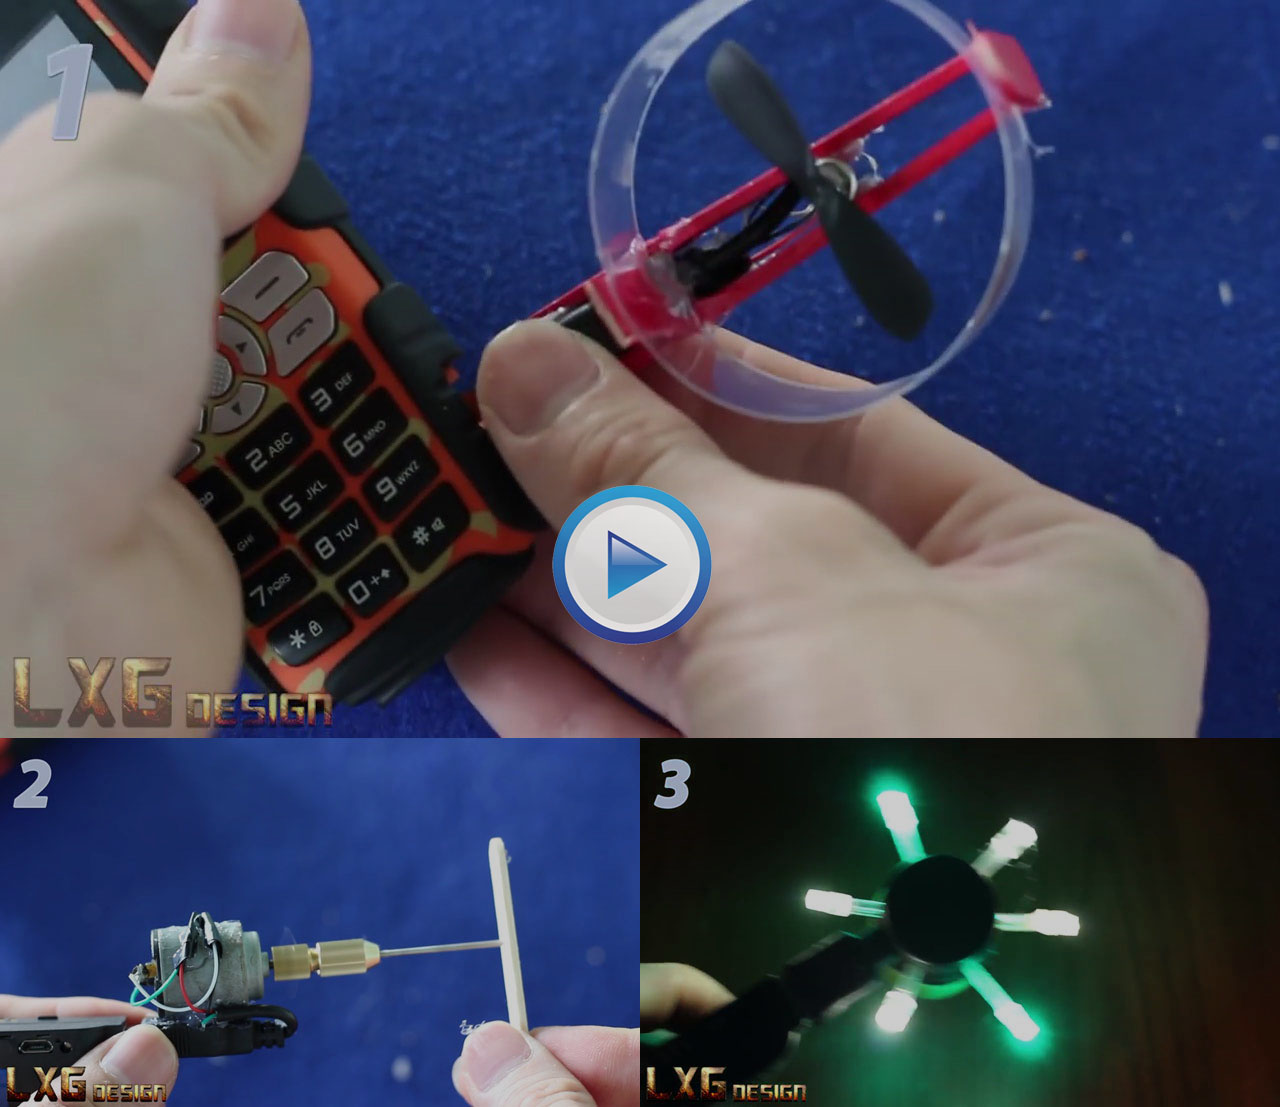 3 incredible USB gadgets you can make at home